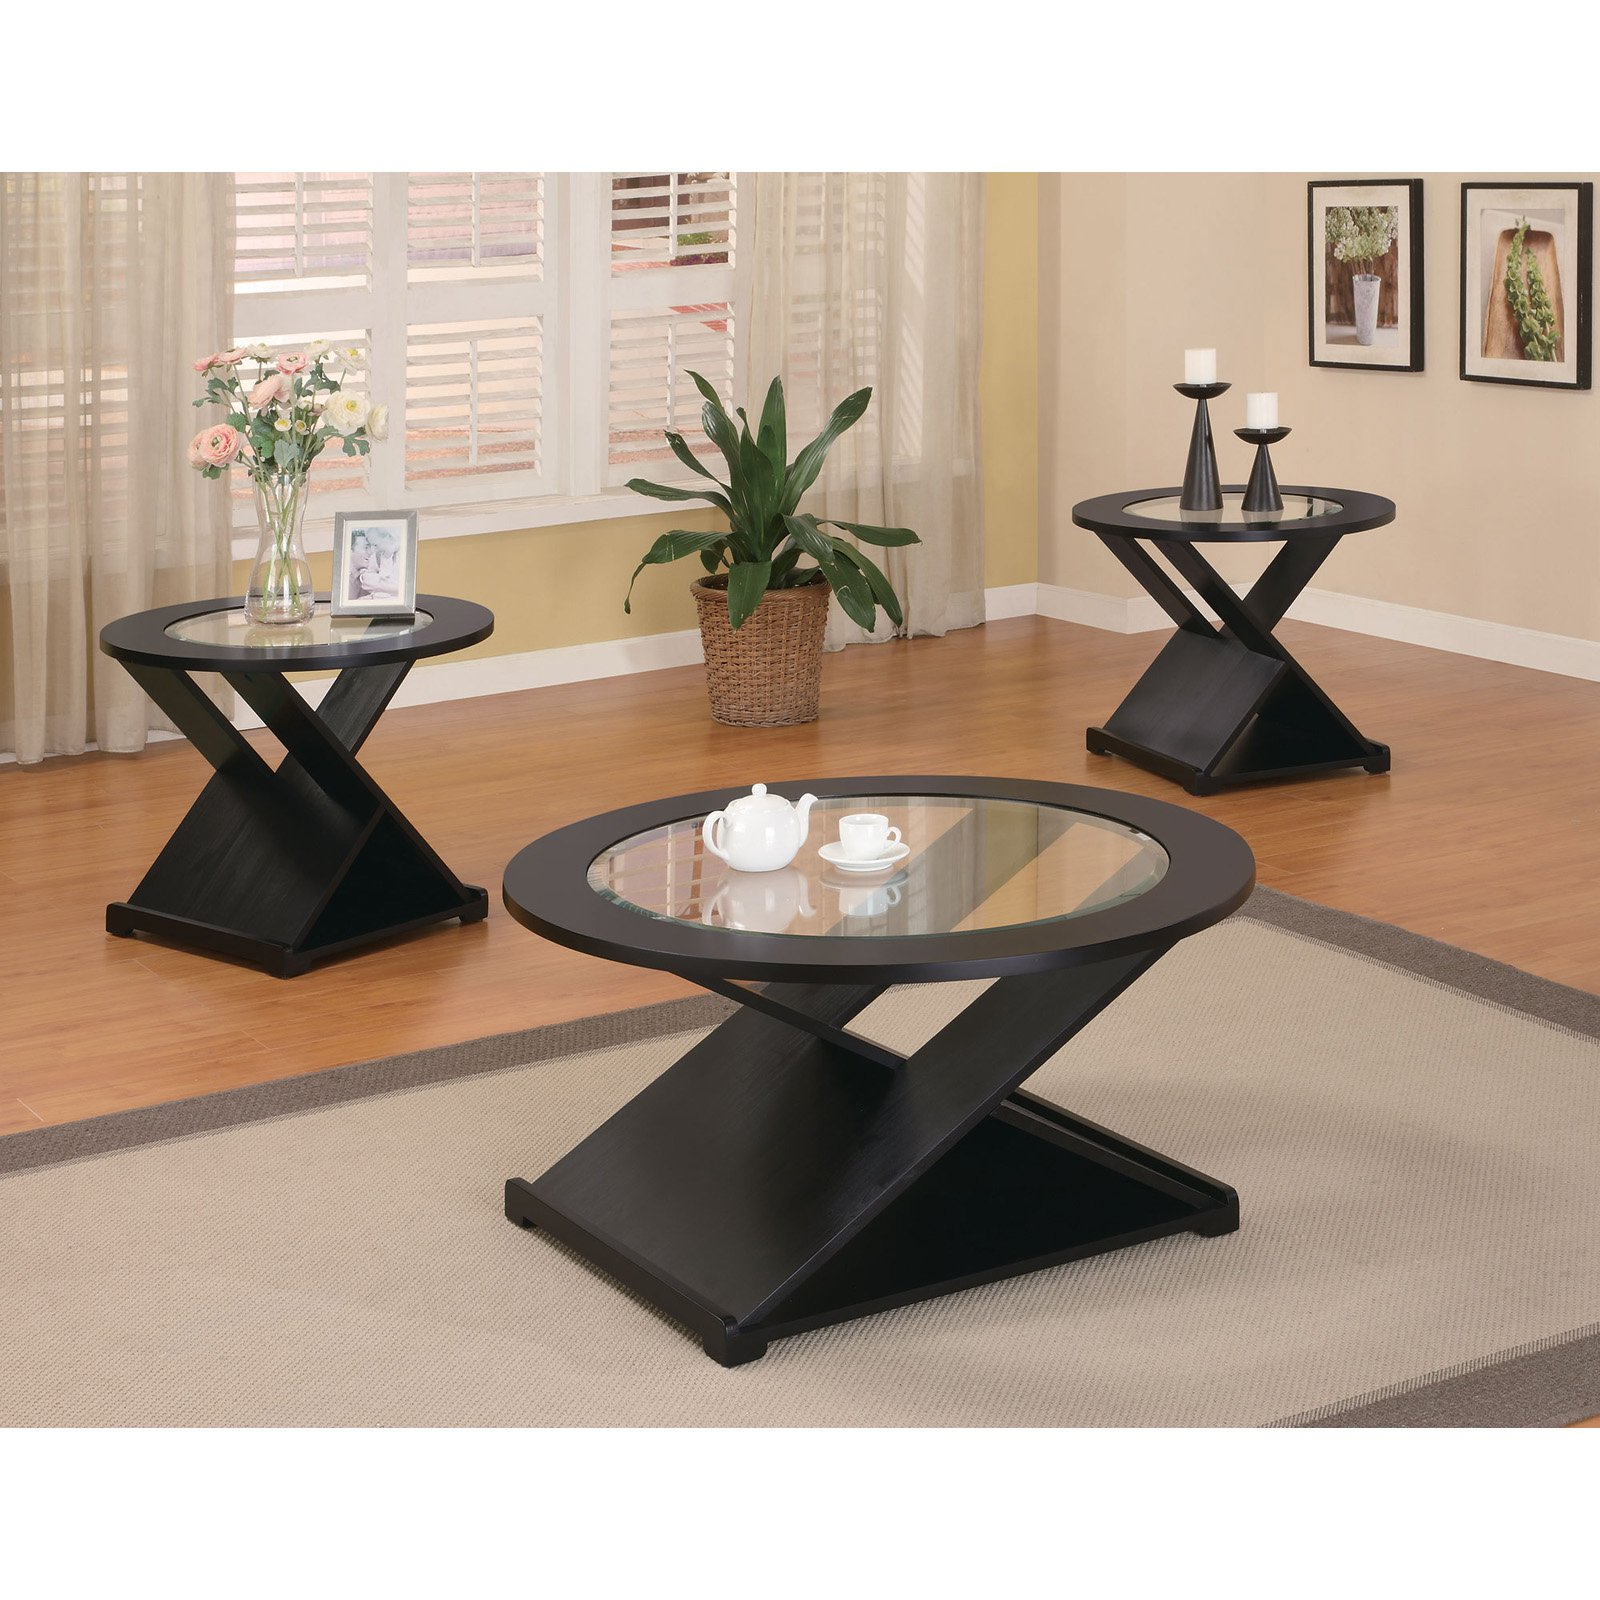 Attrayant Coaster Furniture 3 Piece X Style Coffee Table Set   Walmart.com